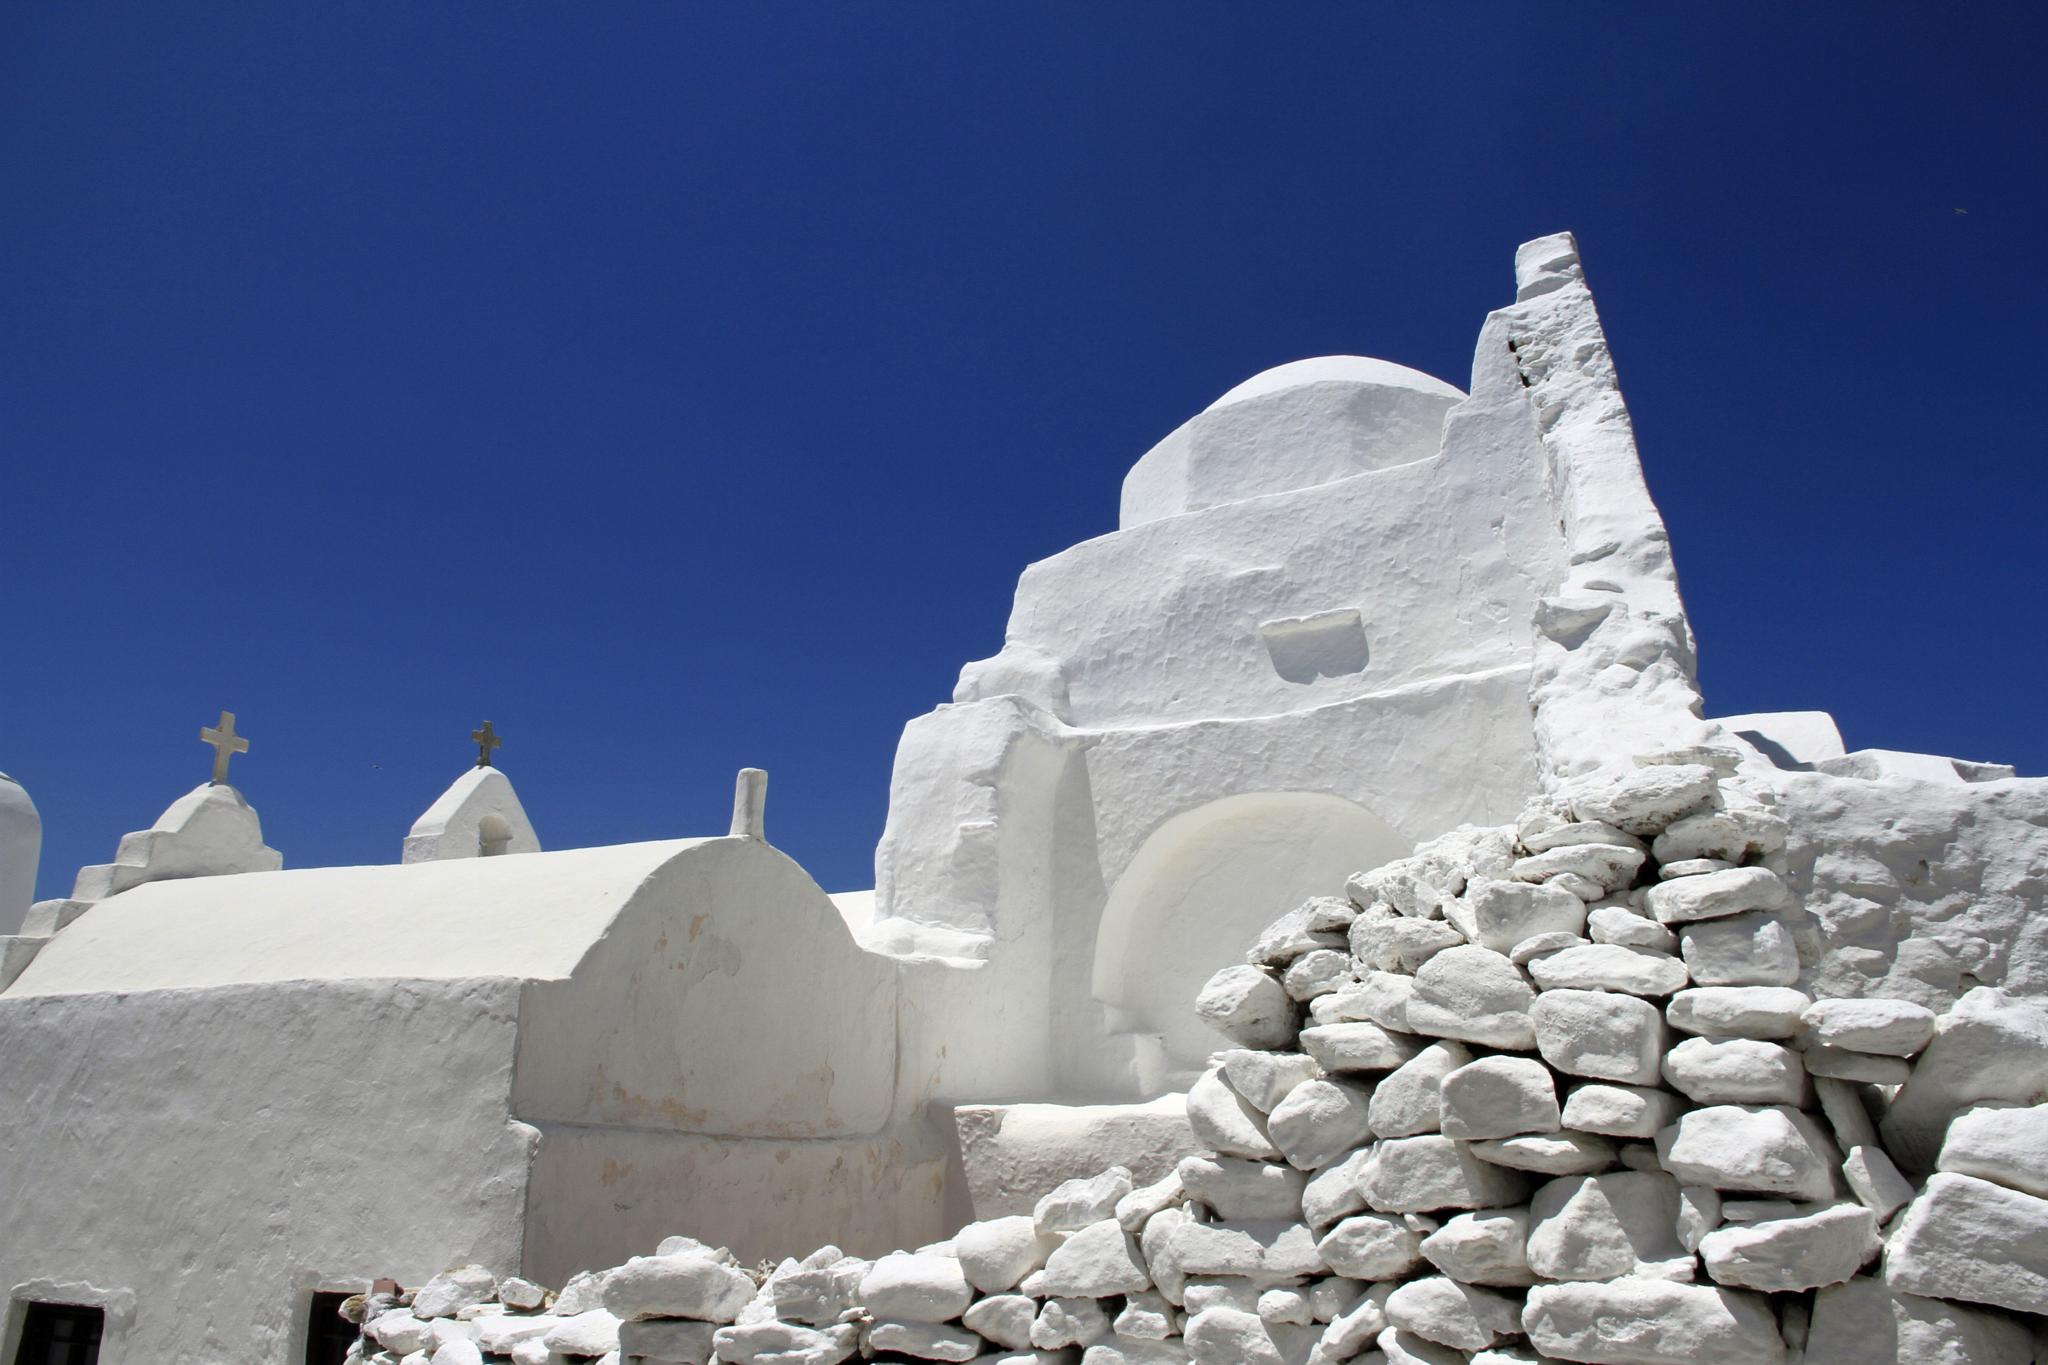 Whitewashed churches by Martin Roper